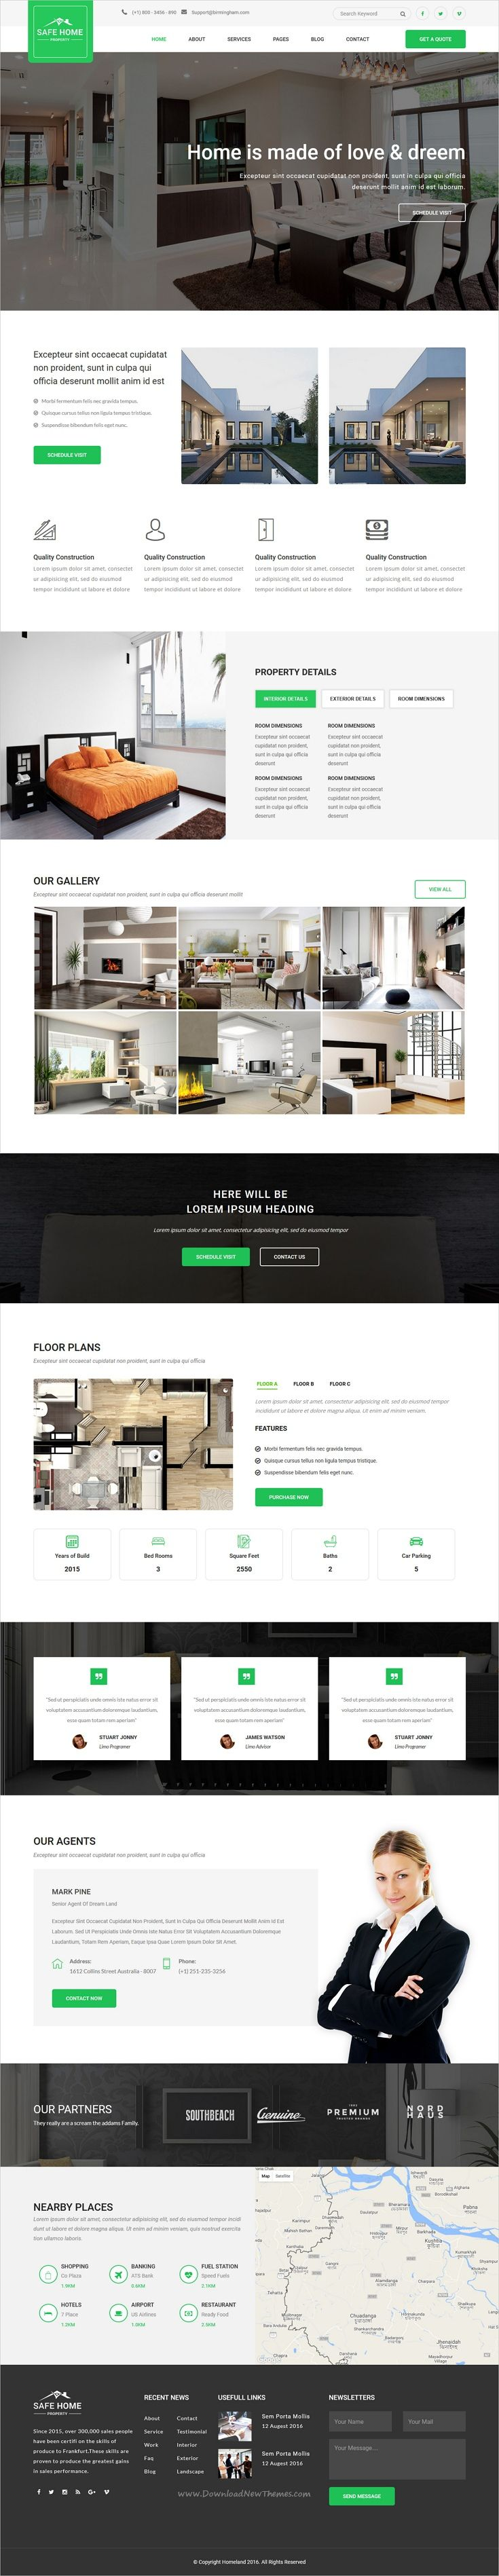 Safehome is clean and modern design responsive #HTML5 #bootstrap template for single #property real estate agencies website download now➩ https://themeforest.net/item/safehome-real-estate-single-property-html5-template/19751077?ref=Datasata